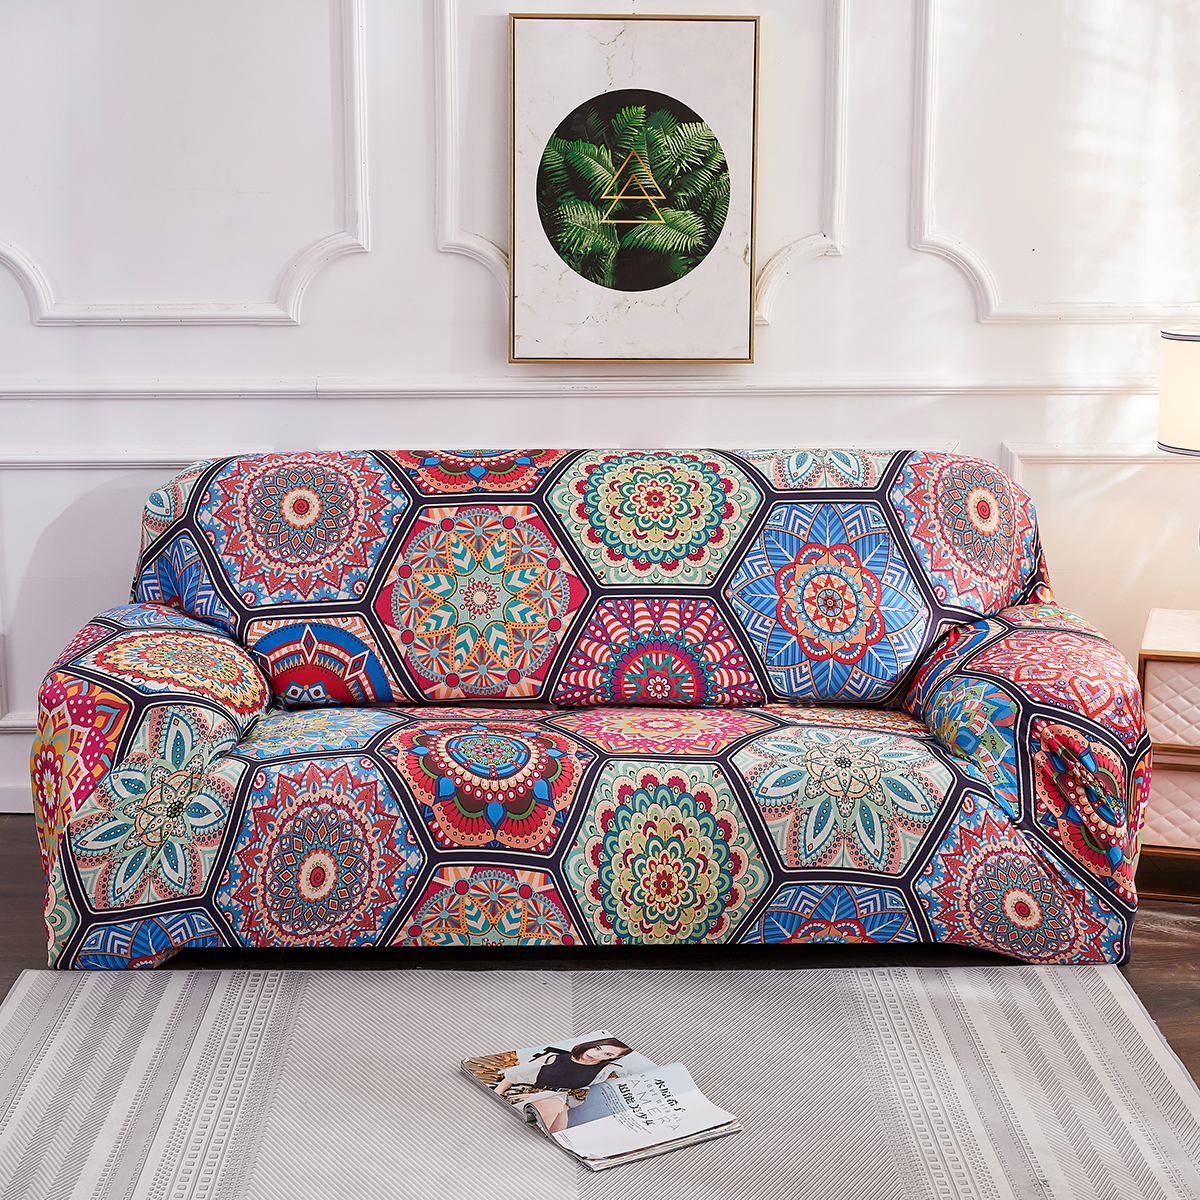 Bohemian Printed Slipcover Spandex Morocco All inclusive Sofa Cover Endurable and Free Wrinkle Jacquard Fabric Couch